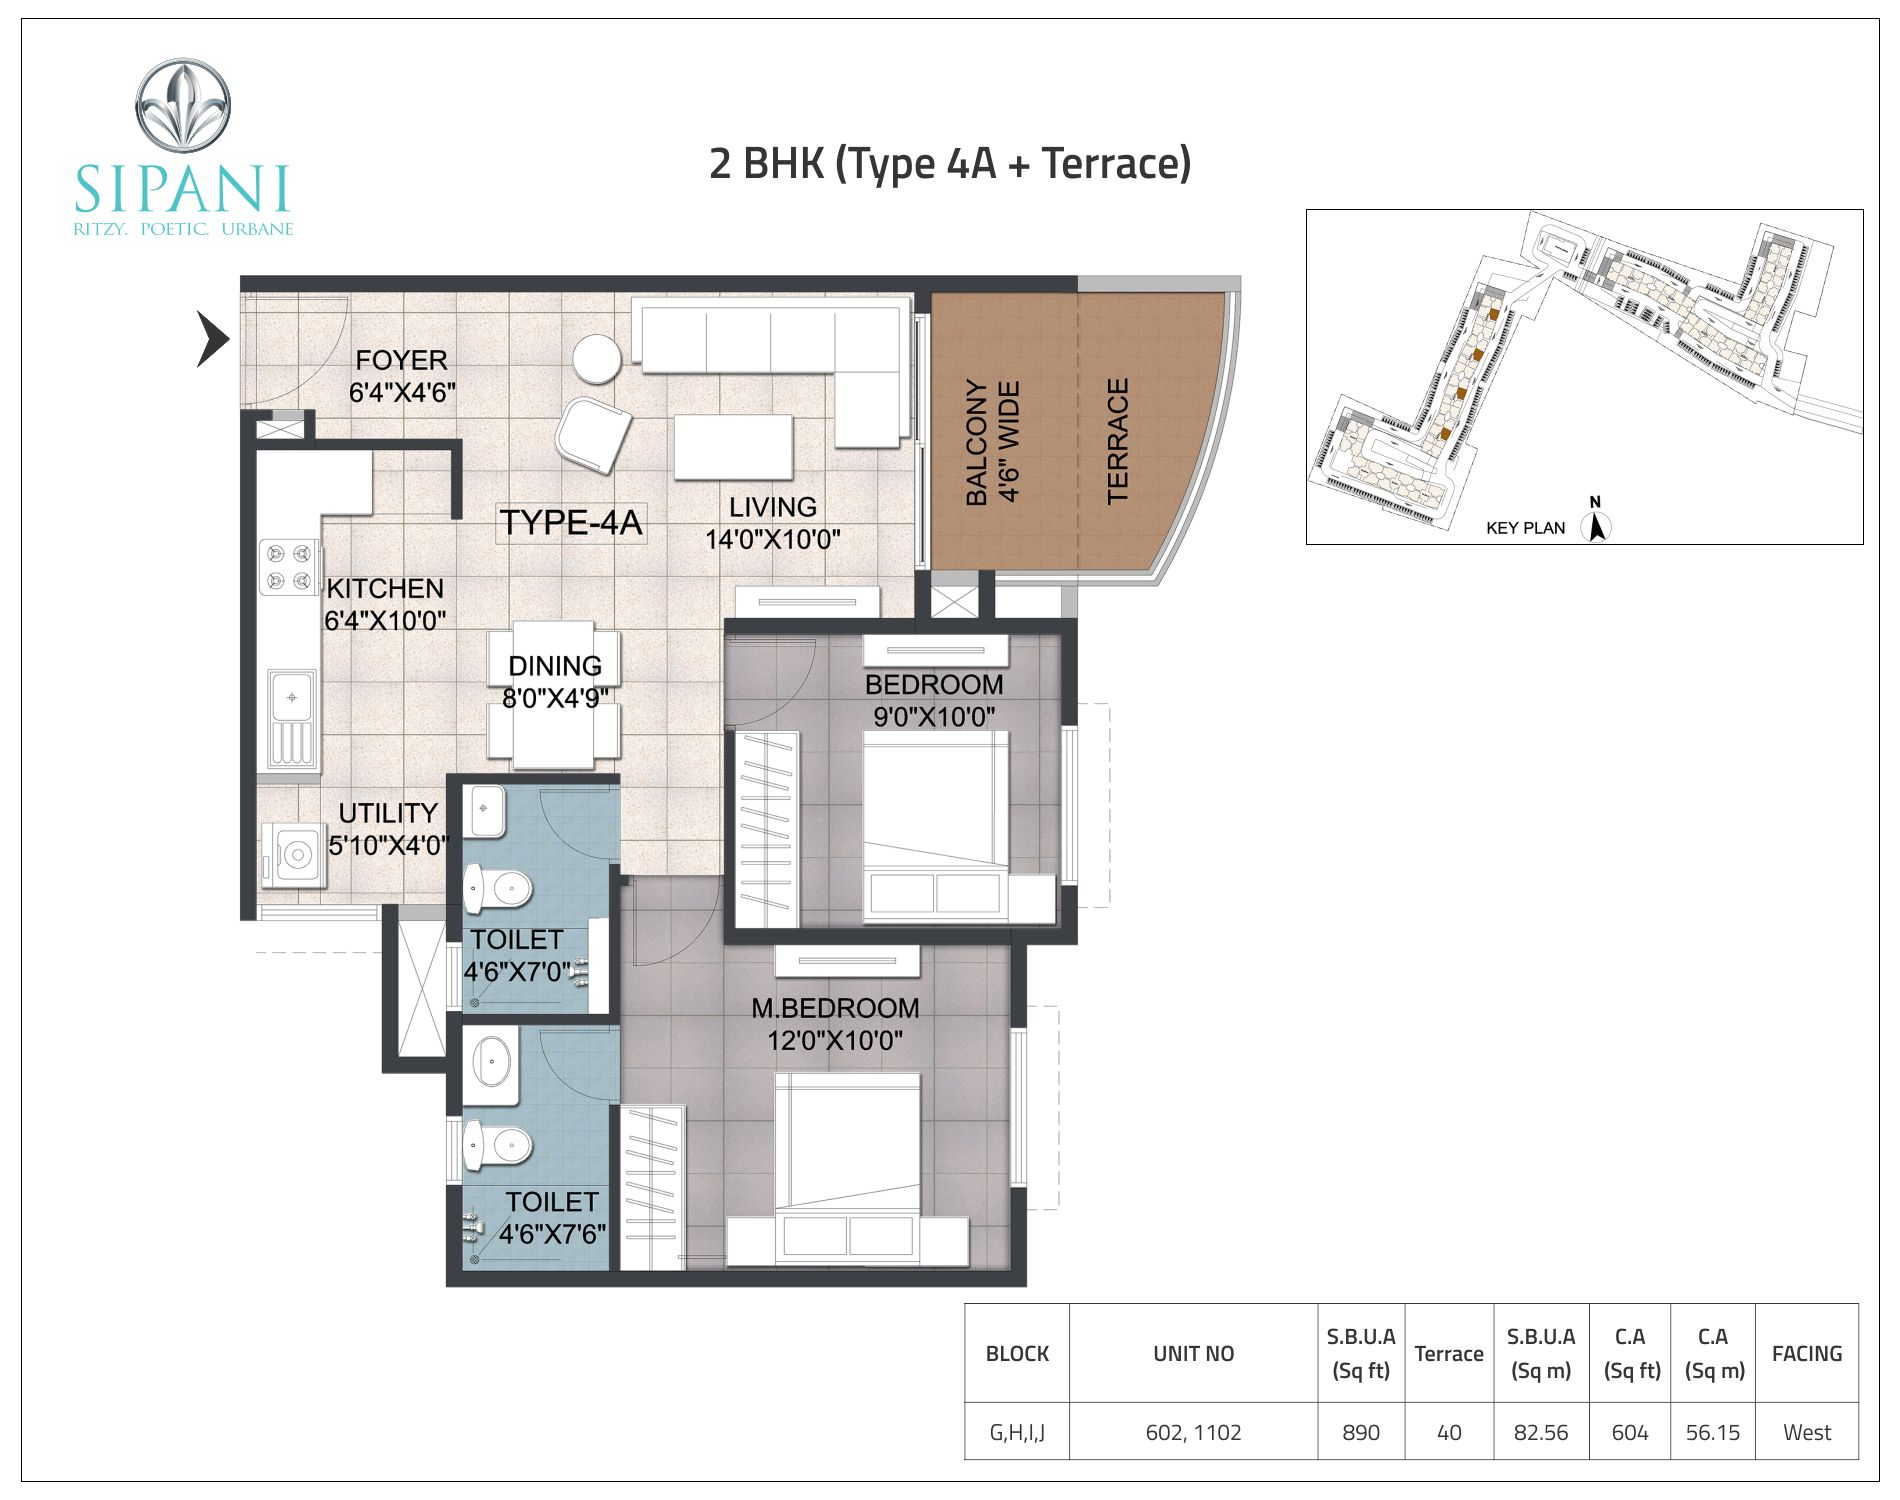 2_BHK_(Type_4A+Terrace)